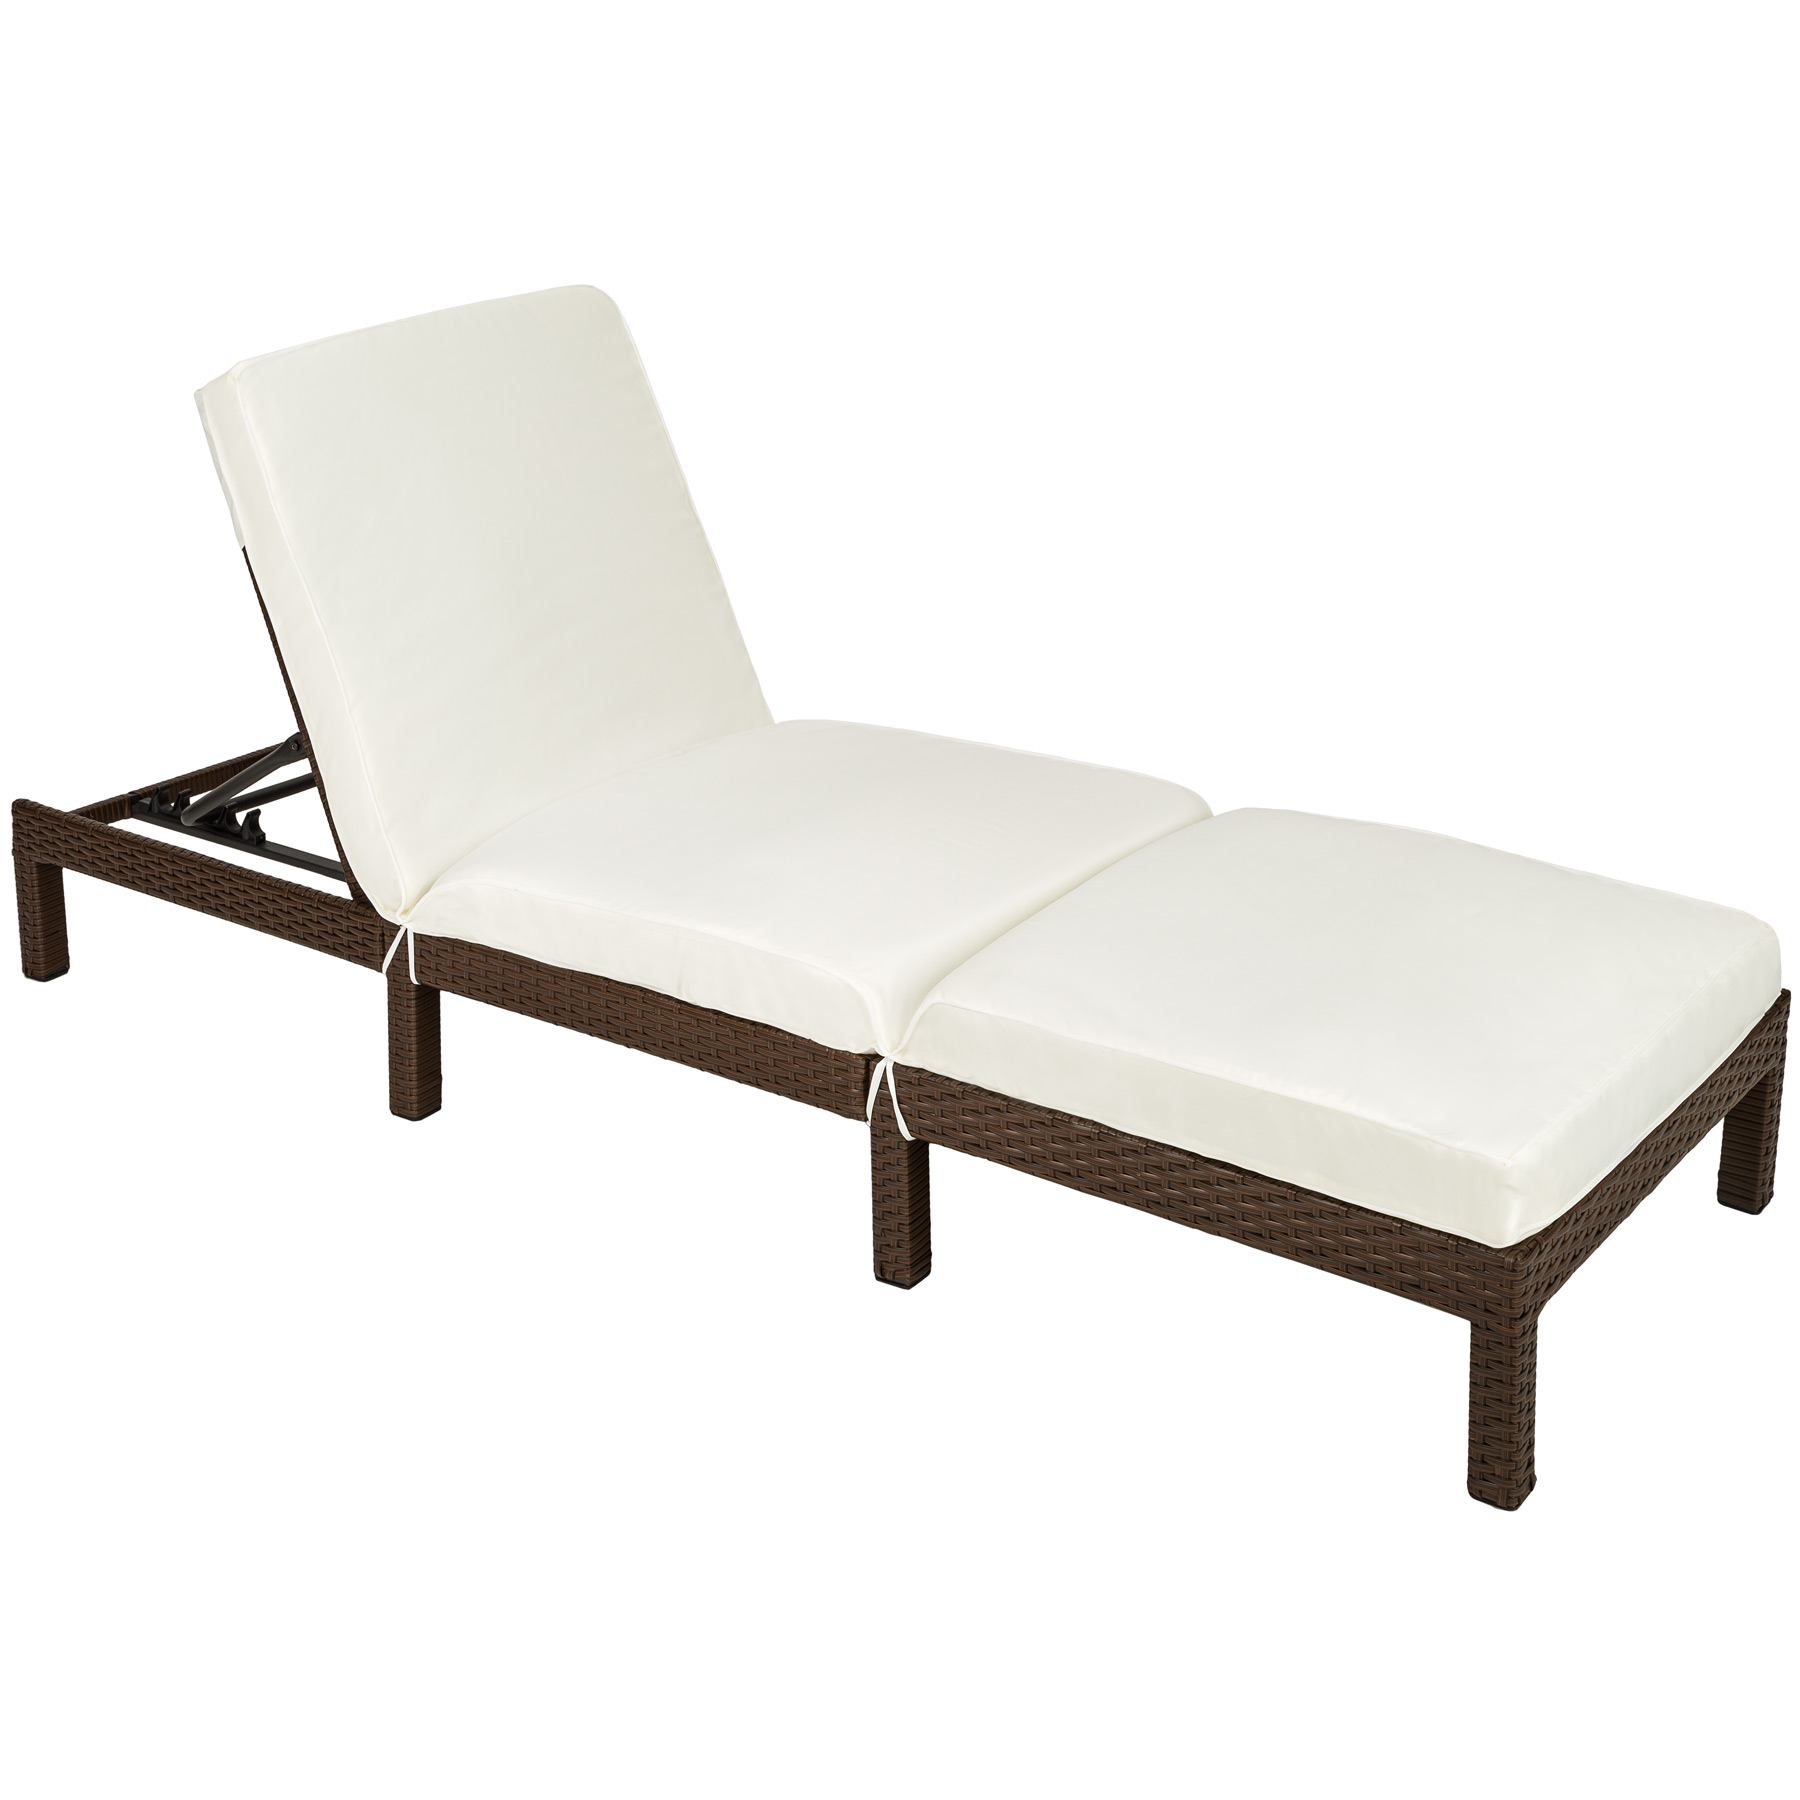 chaise longue bain de soleil meuble de jardin en poly rotin transat coussin ebay. Black Bedroom Furniture Sets. Home Design Ideas